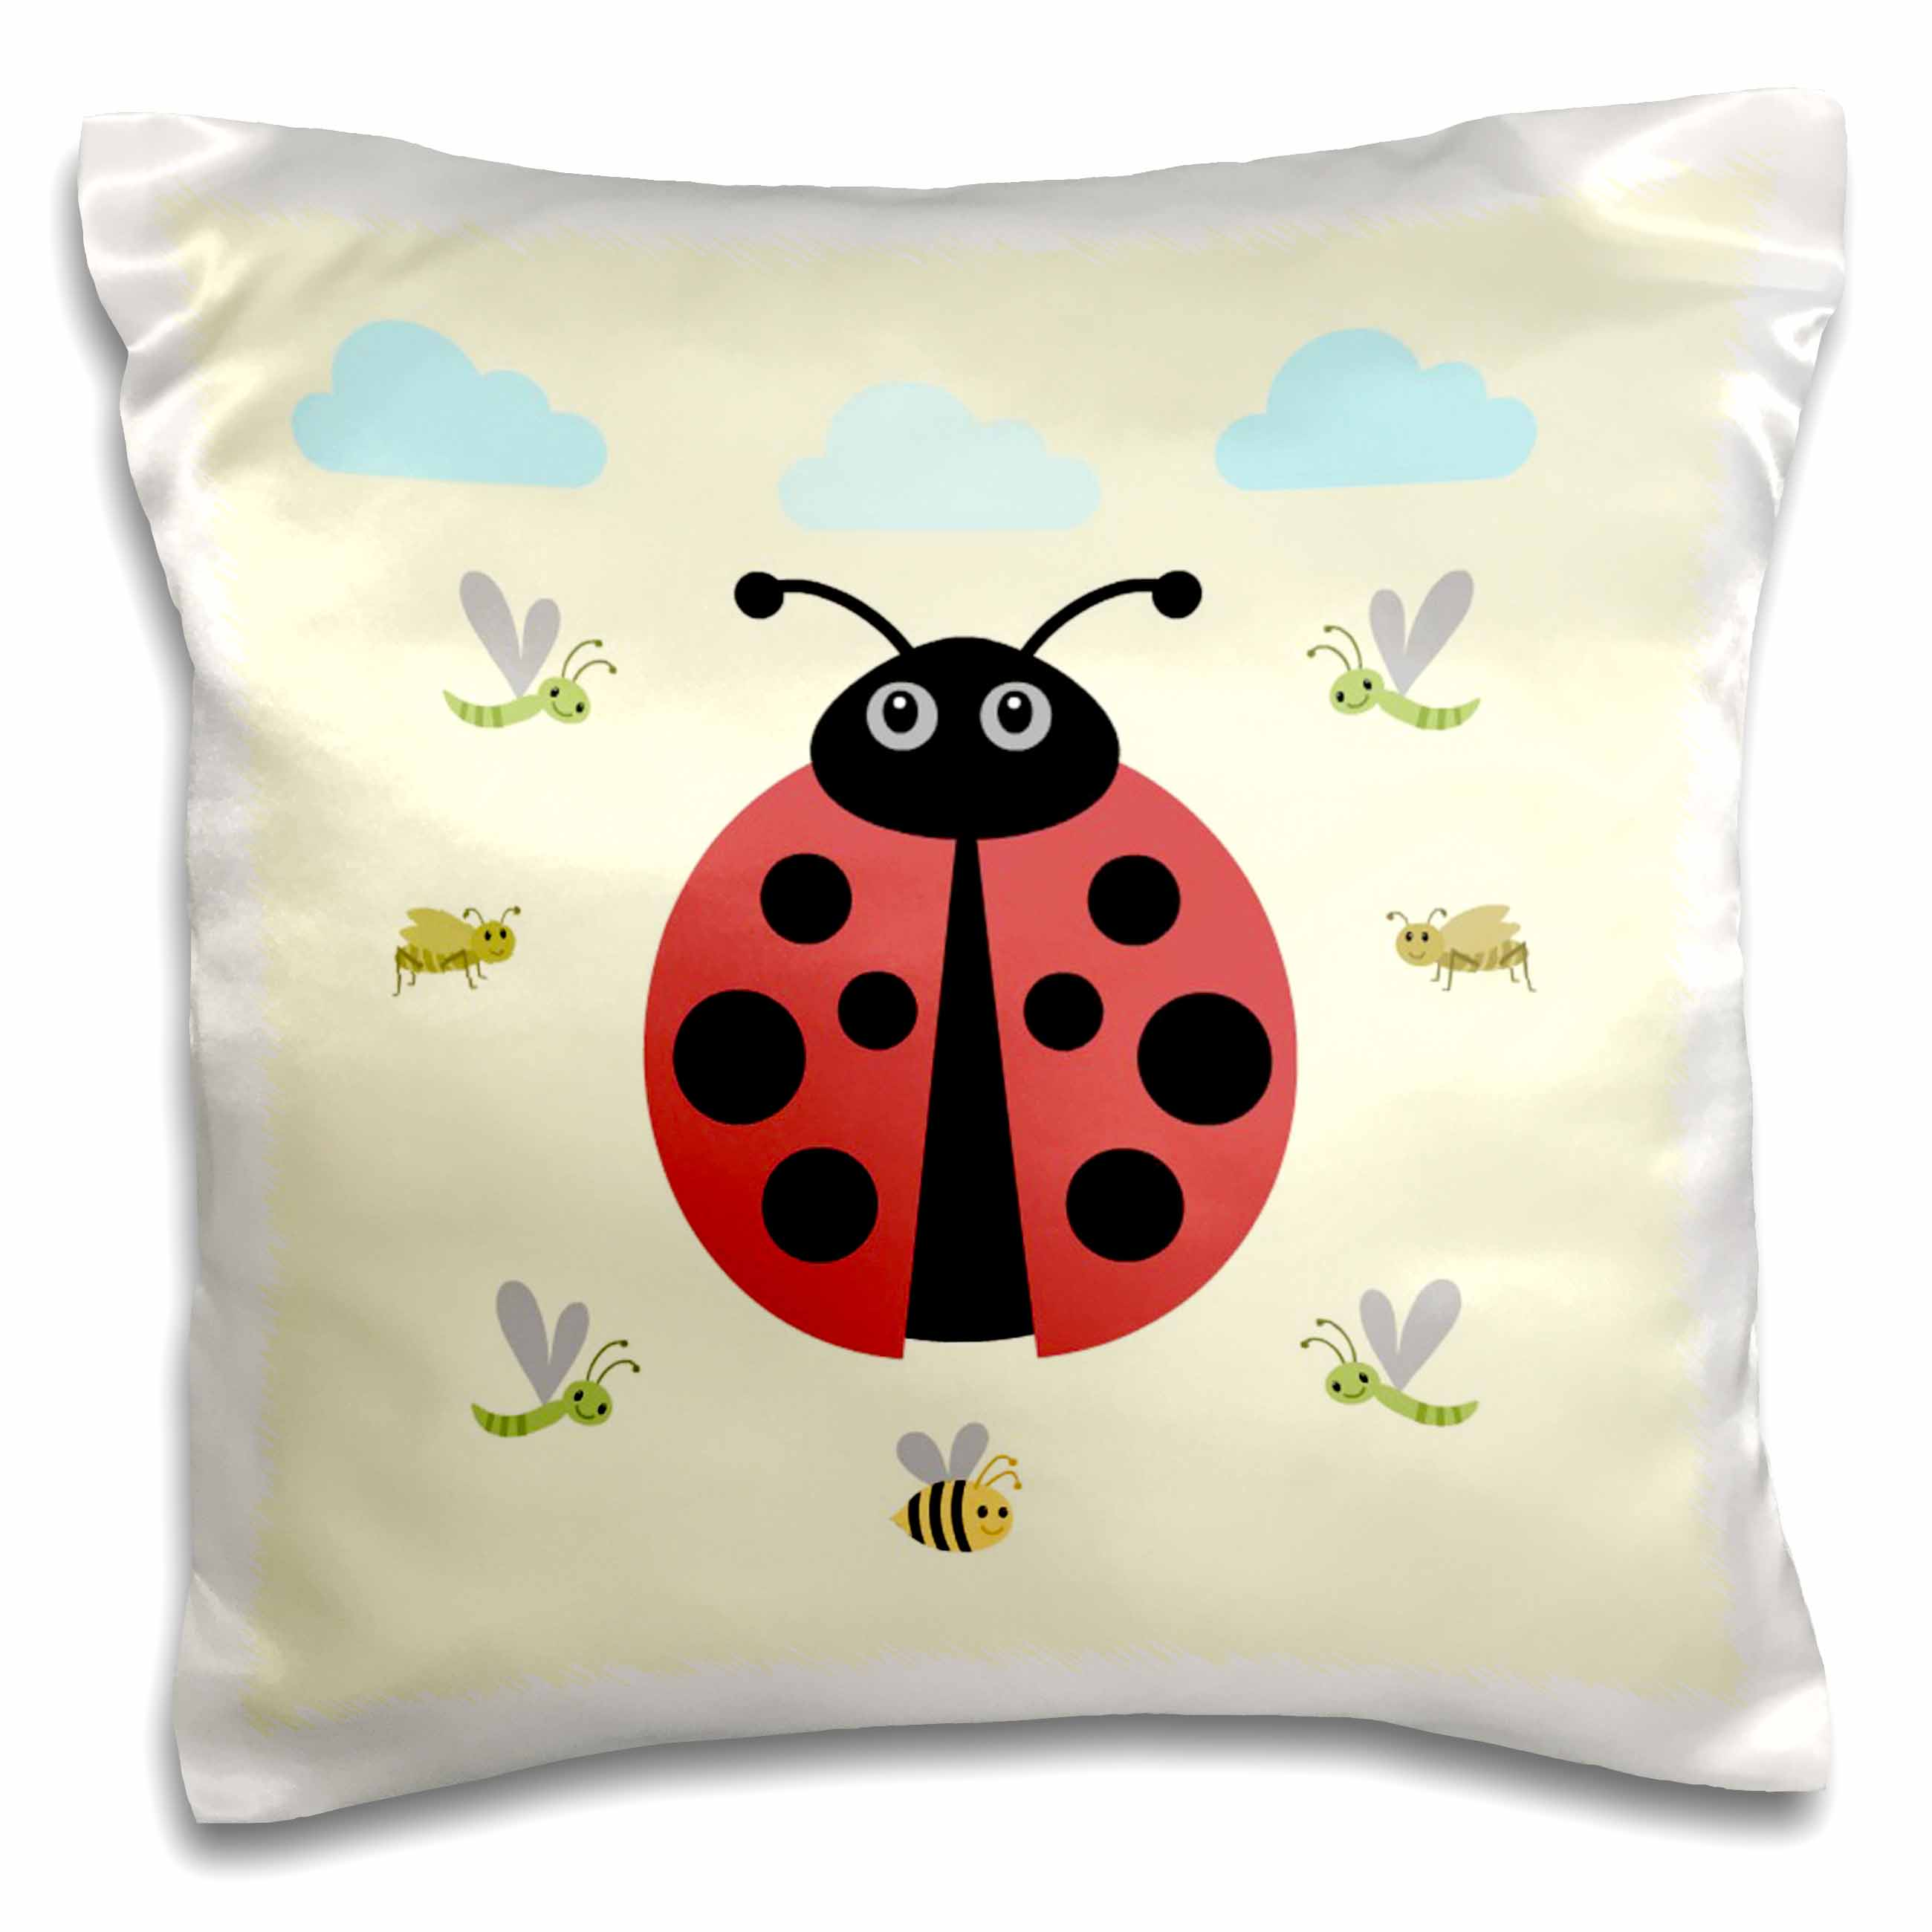 3dRose Ladybug design, kids room, decoration, yellow , Pillow Case, 16 by 16-inch